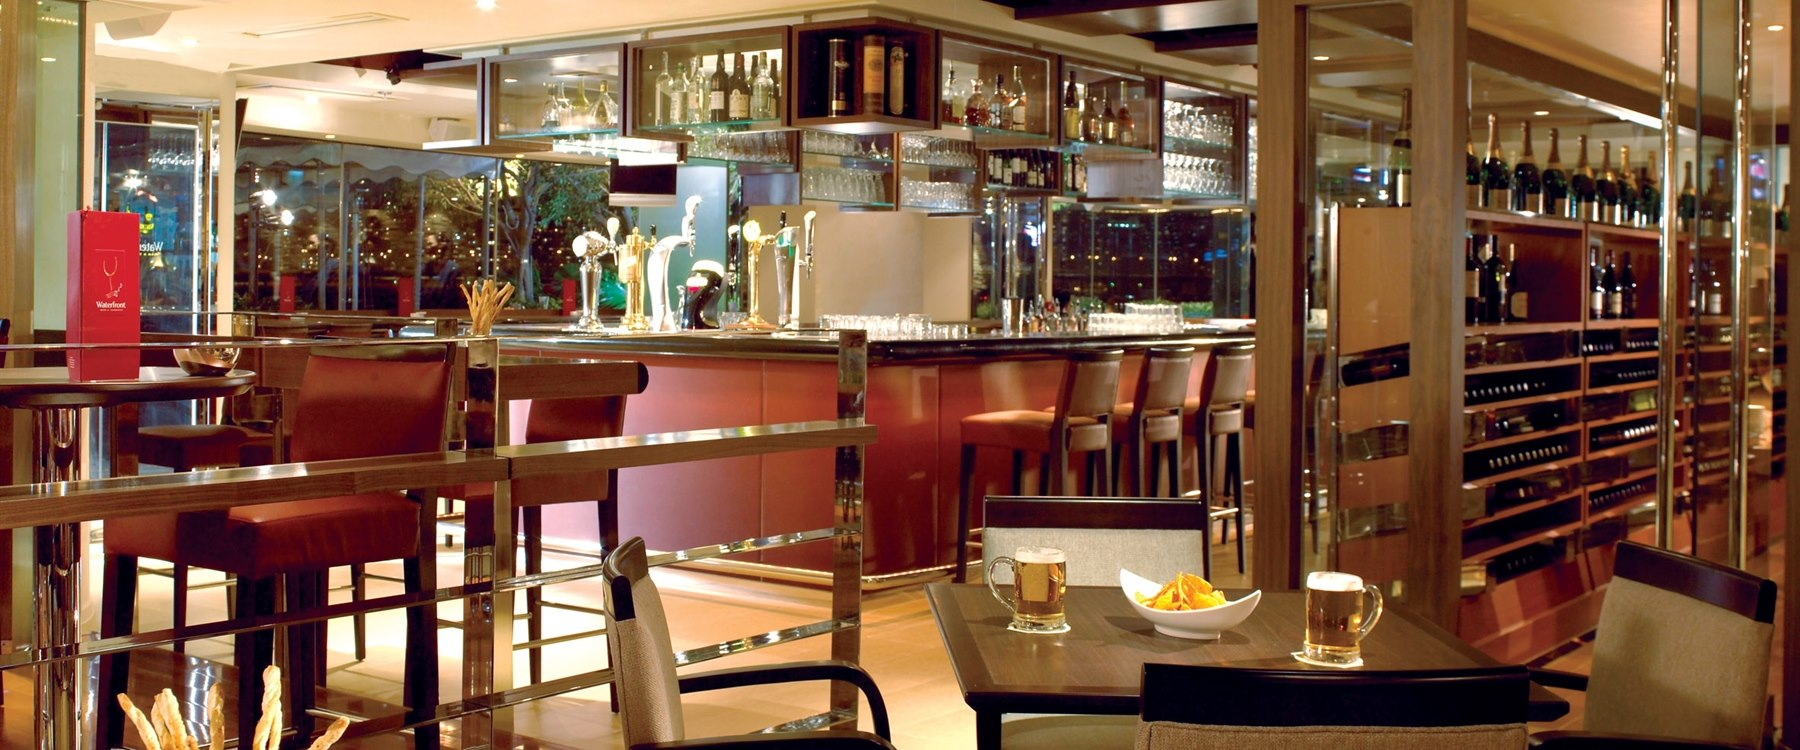 Bar at Harbour Grand Kowloon